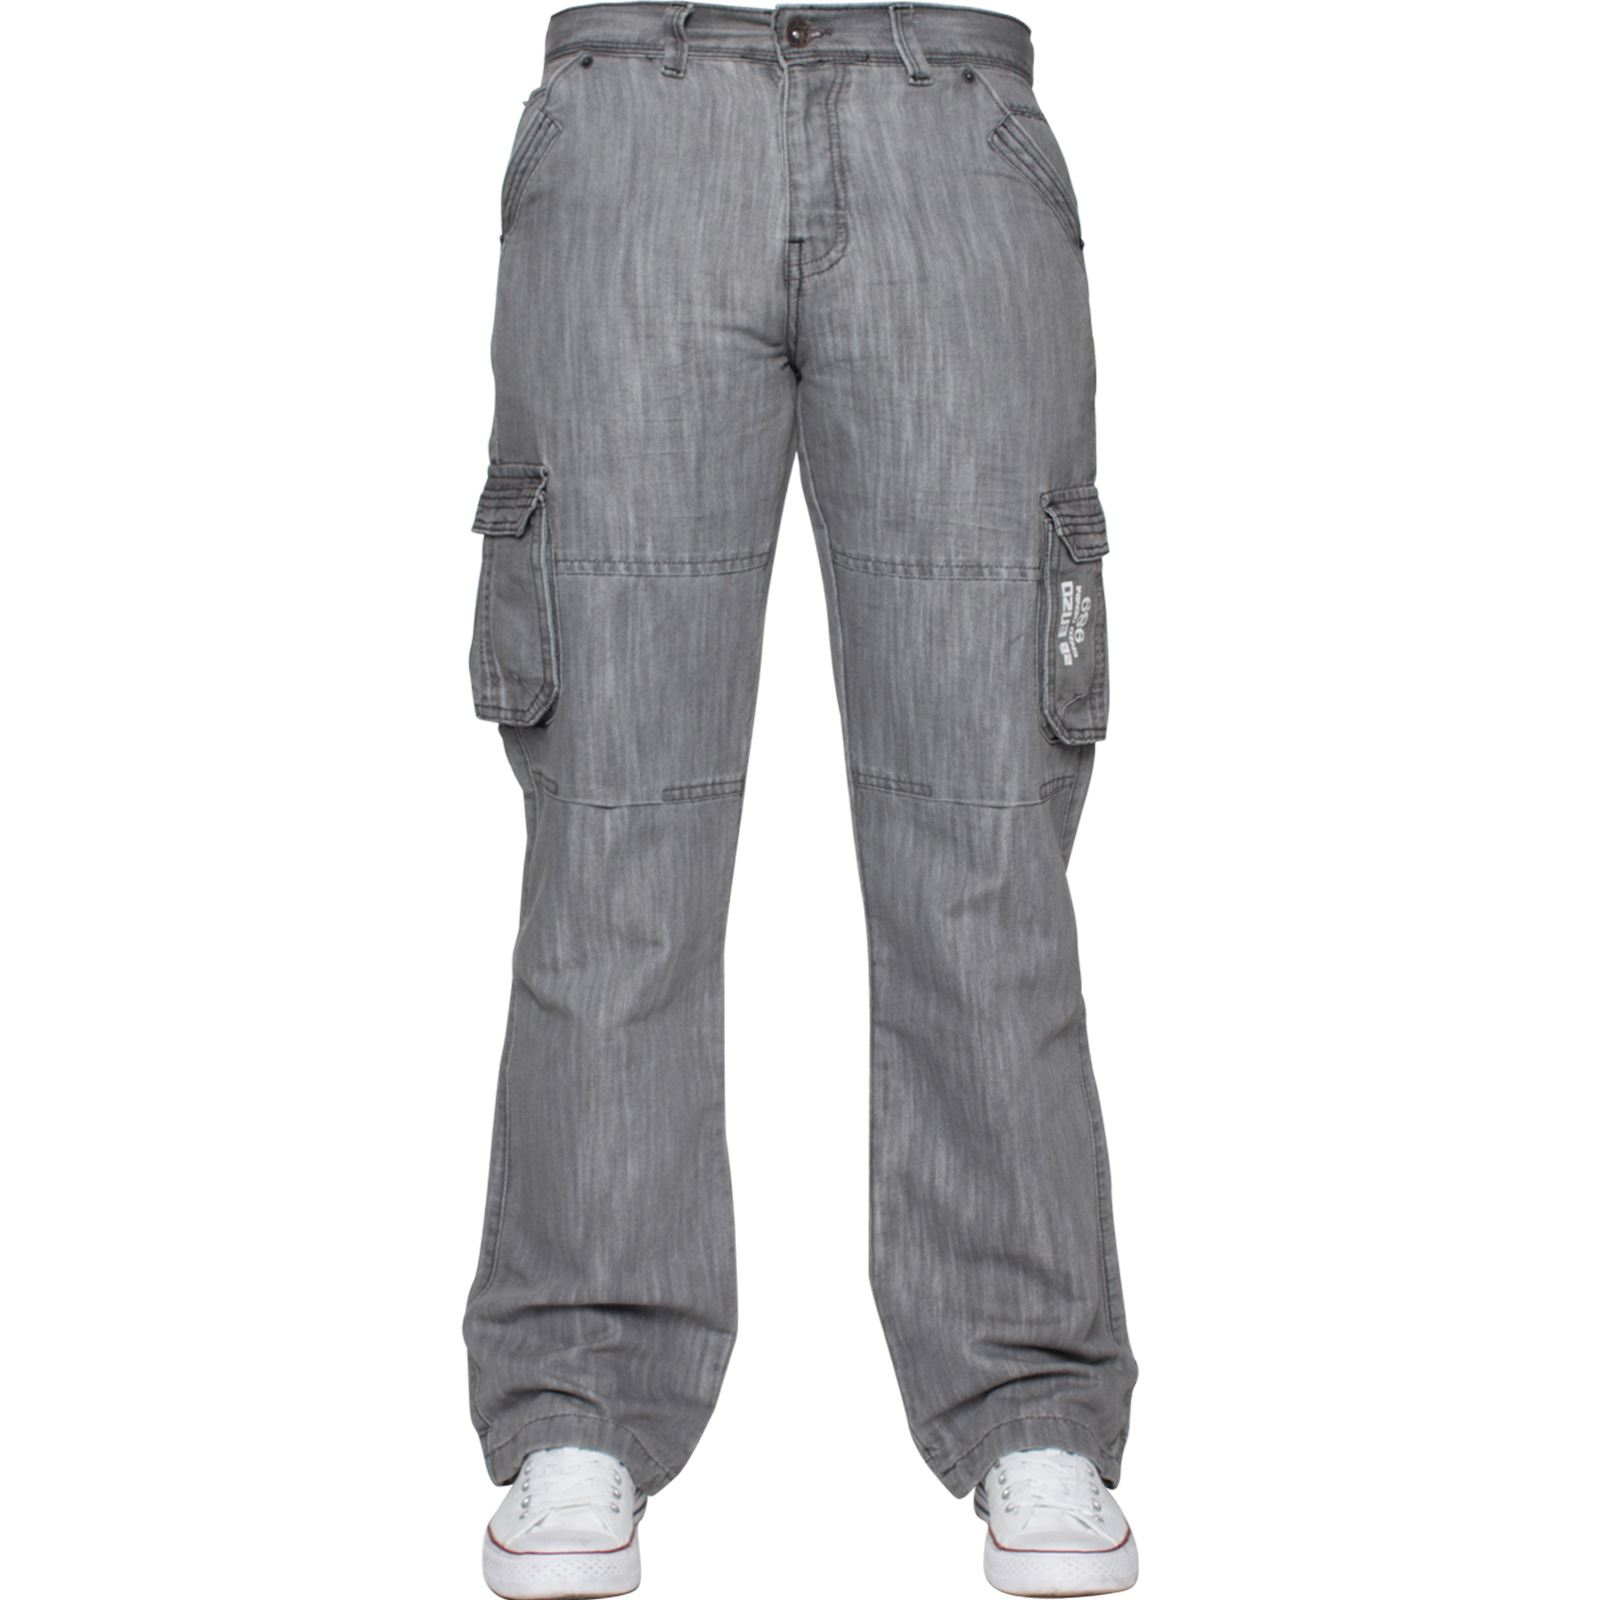 Enzo-Mens-Cargo-Combat-Trousers-Jeans-Work-Casual-Denim-Pants-Big-Tall-All-Waist thumbnail 26